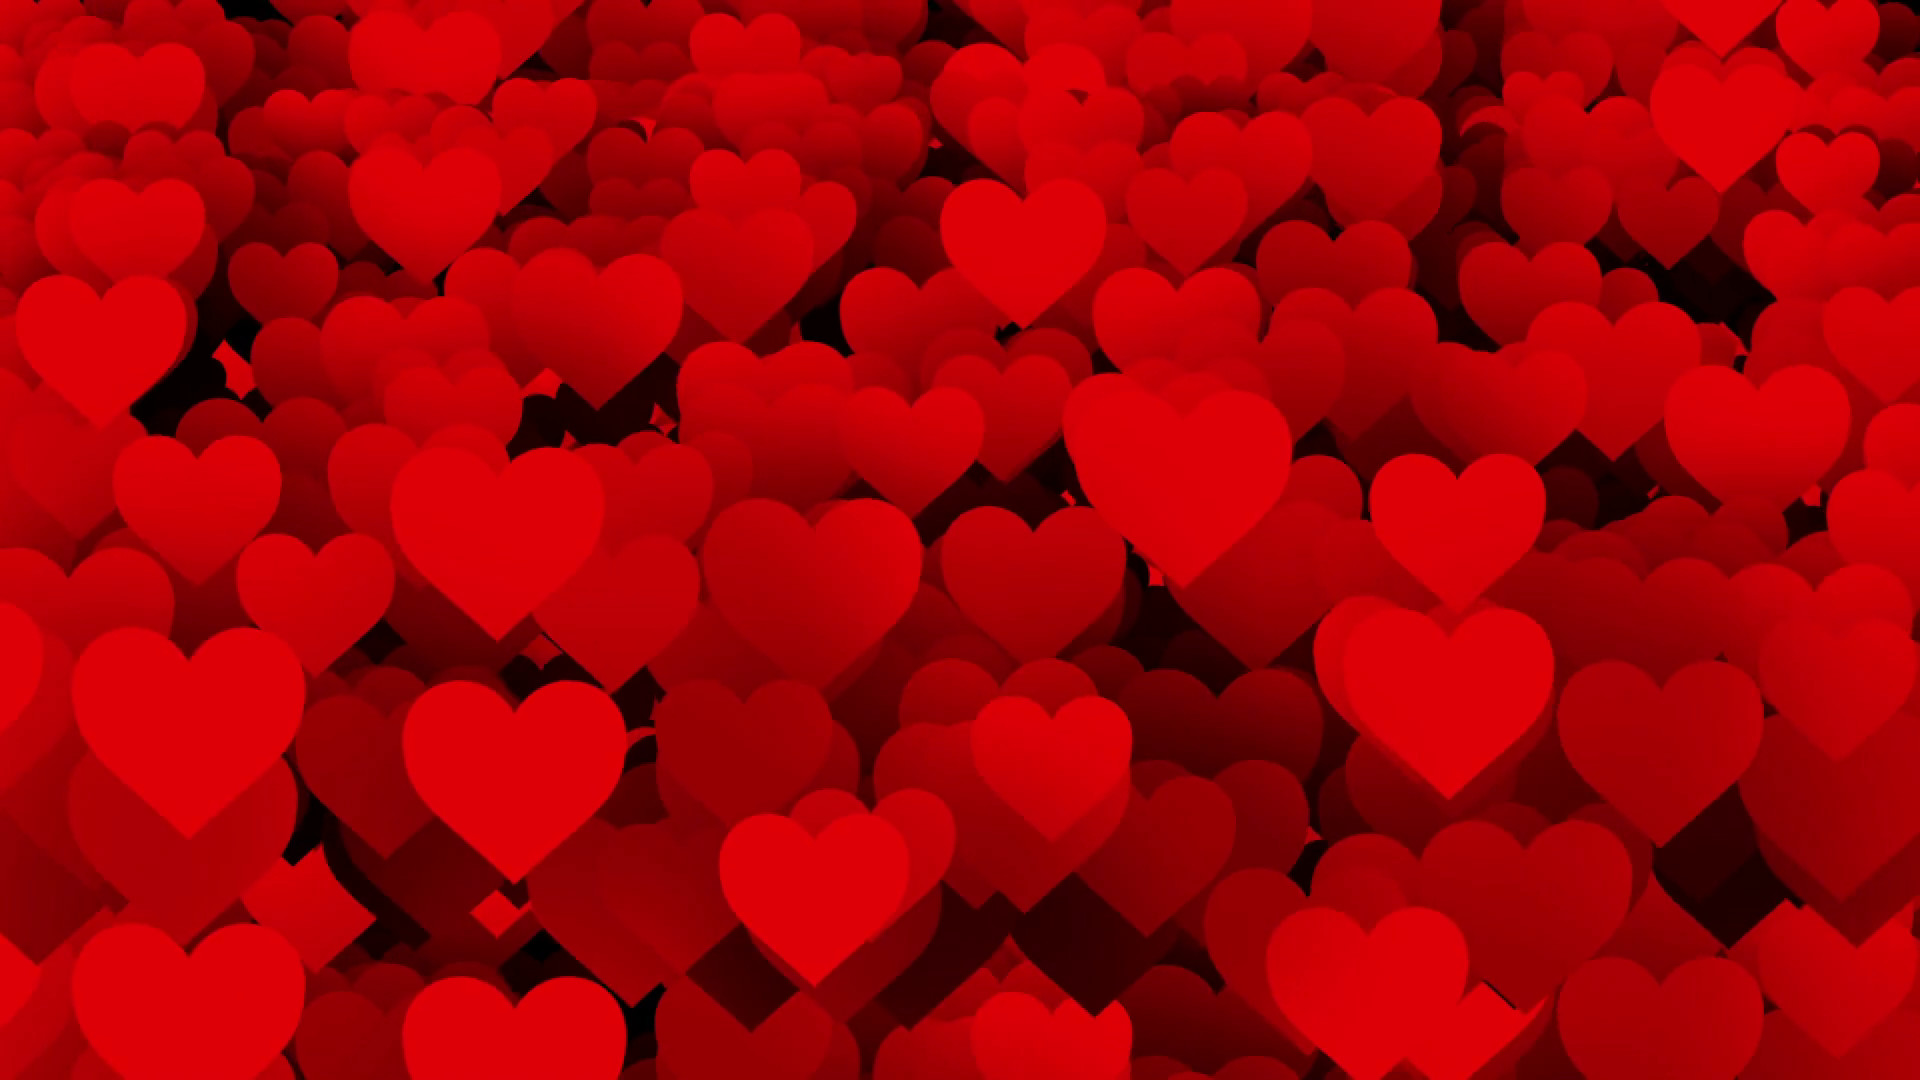 Red Heart Love Wallpaper: Red Heart Background ·①